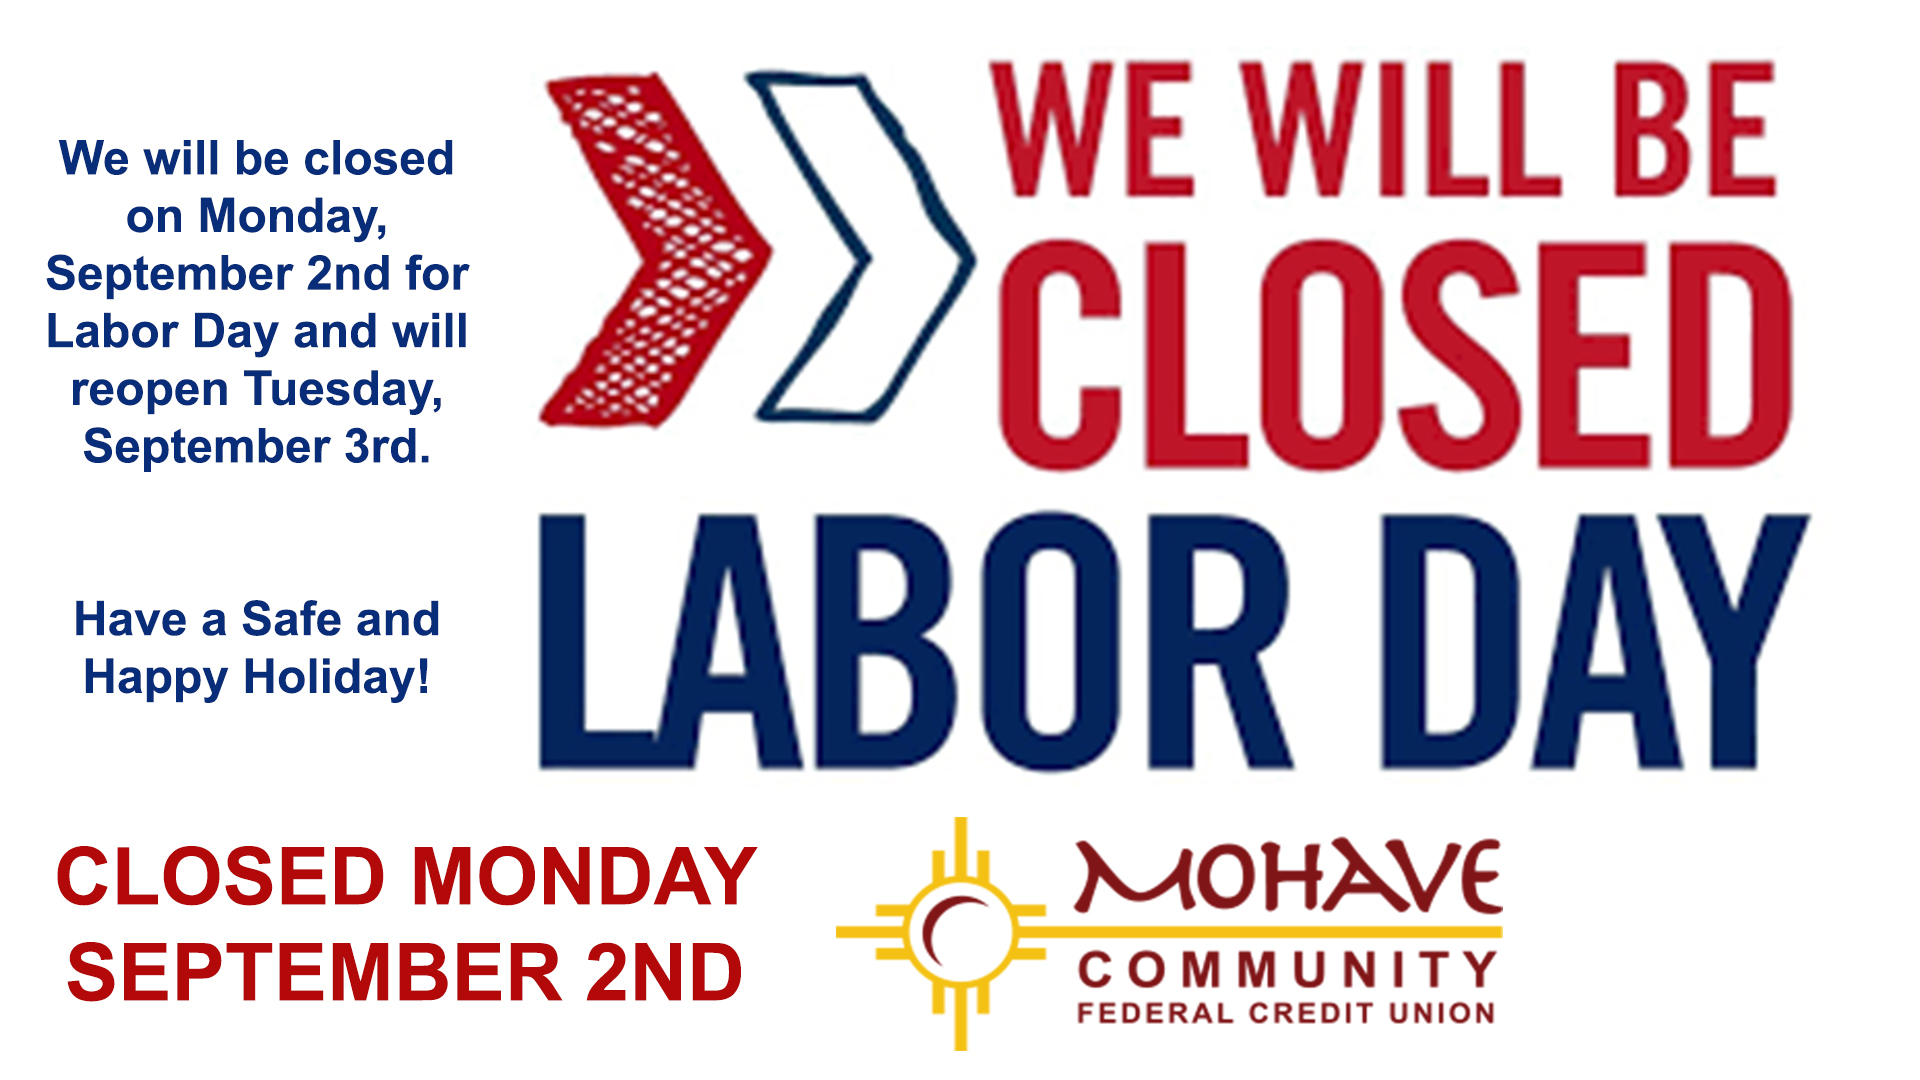 MCFCU will be closed Monday September 2nd in observance of Labor Day.